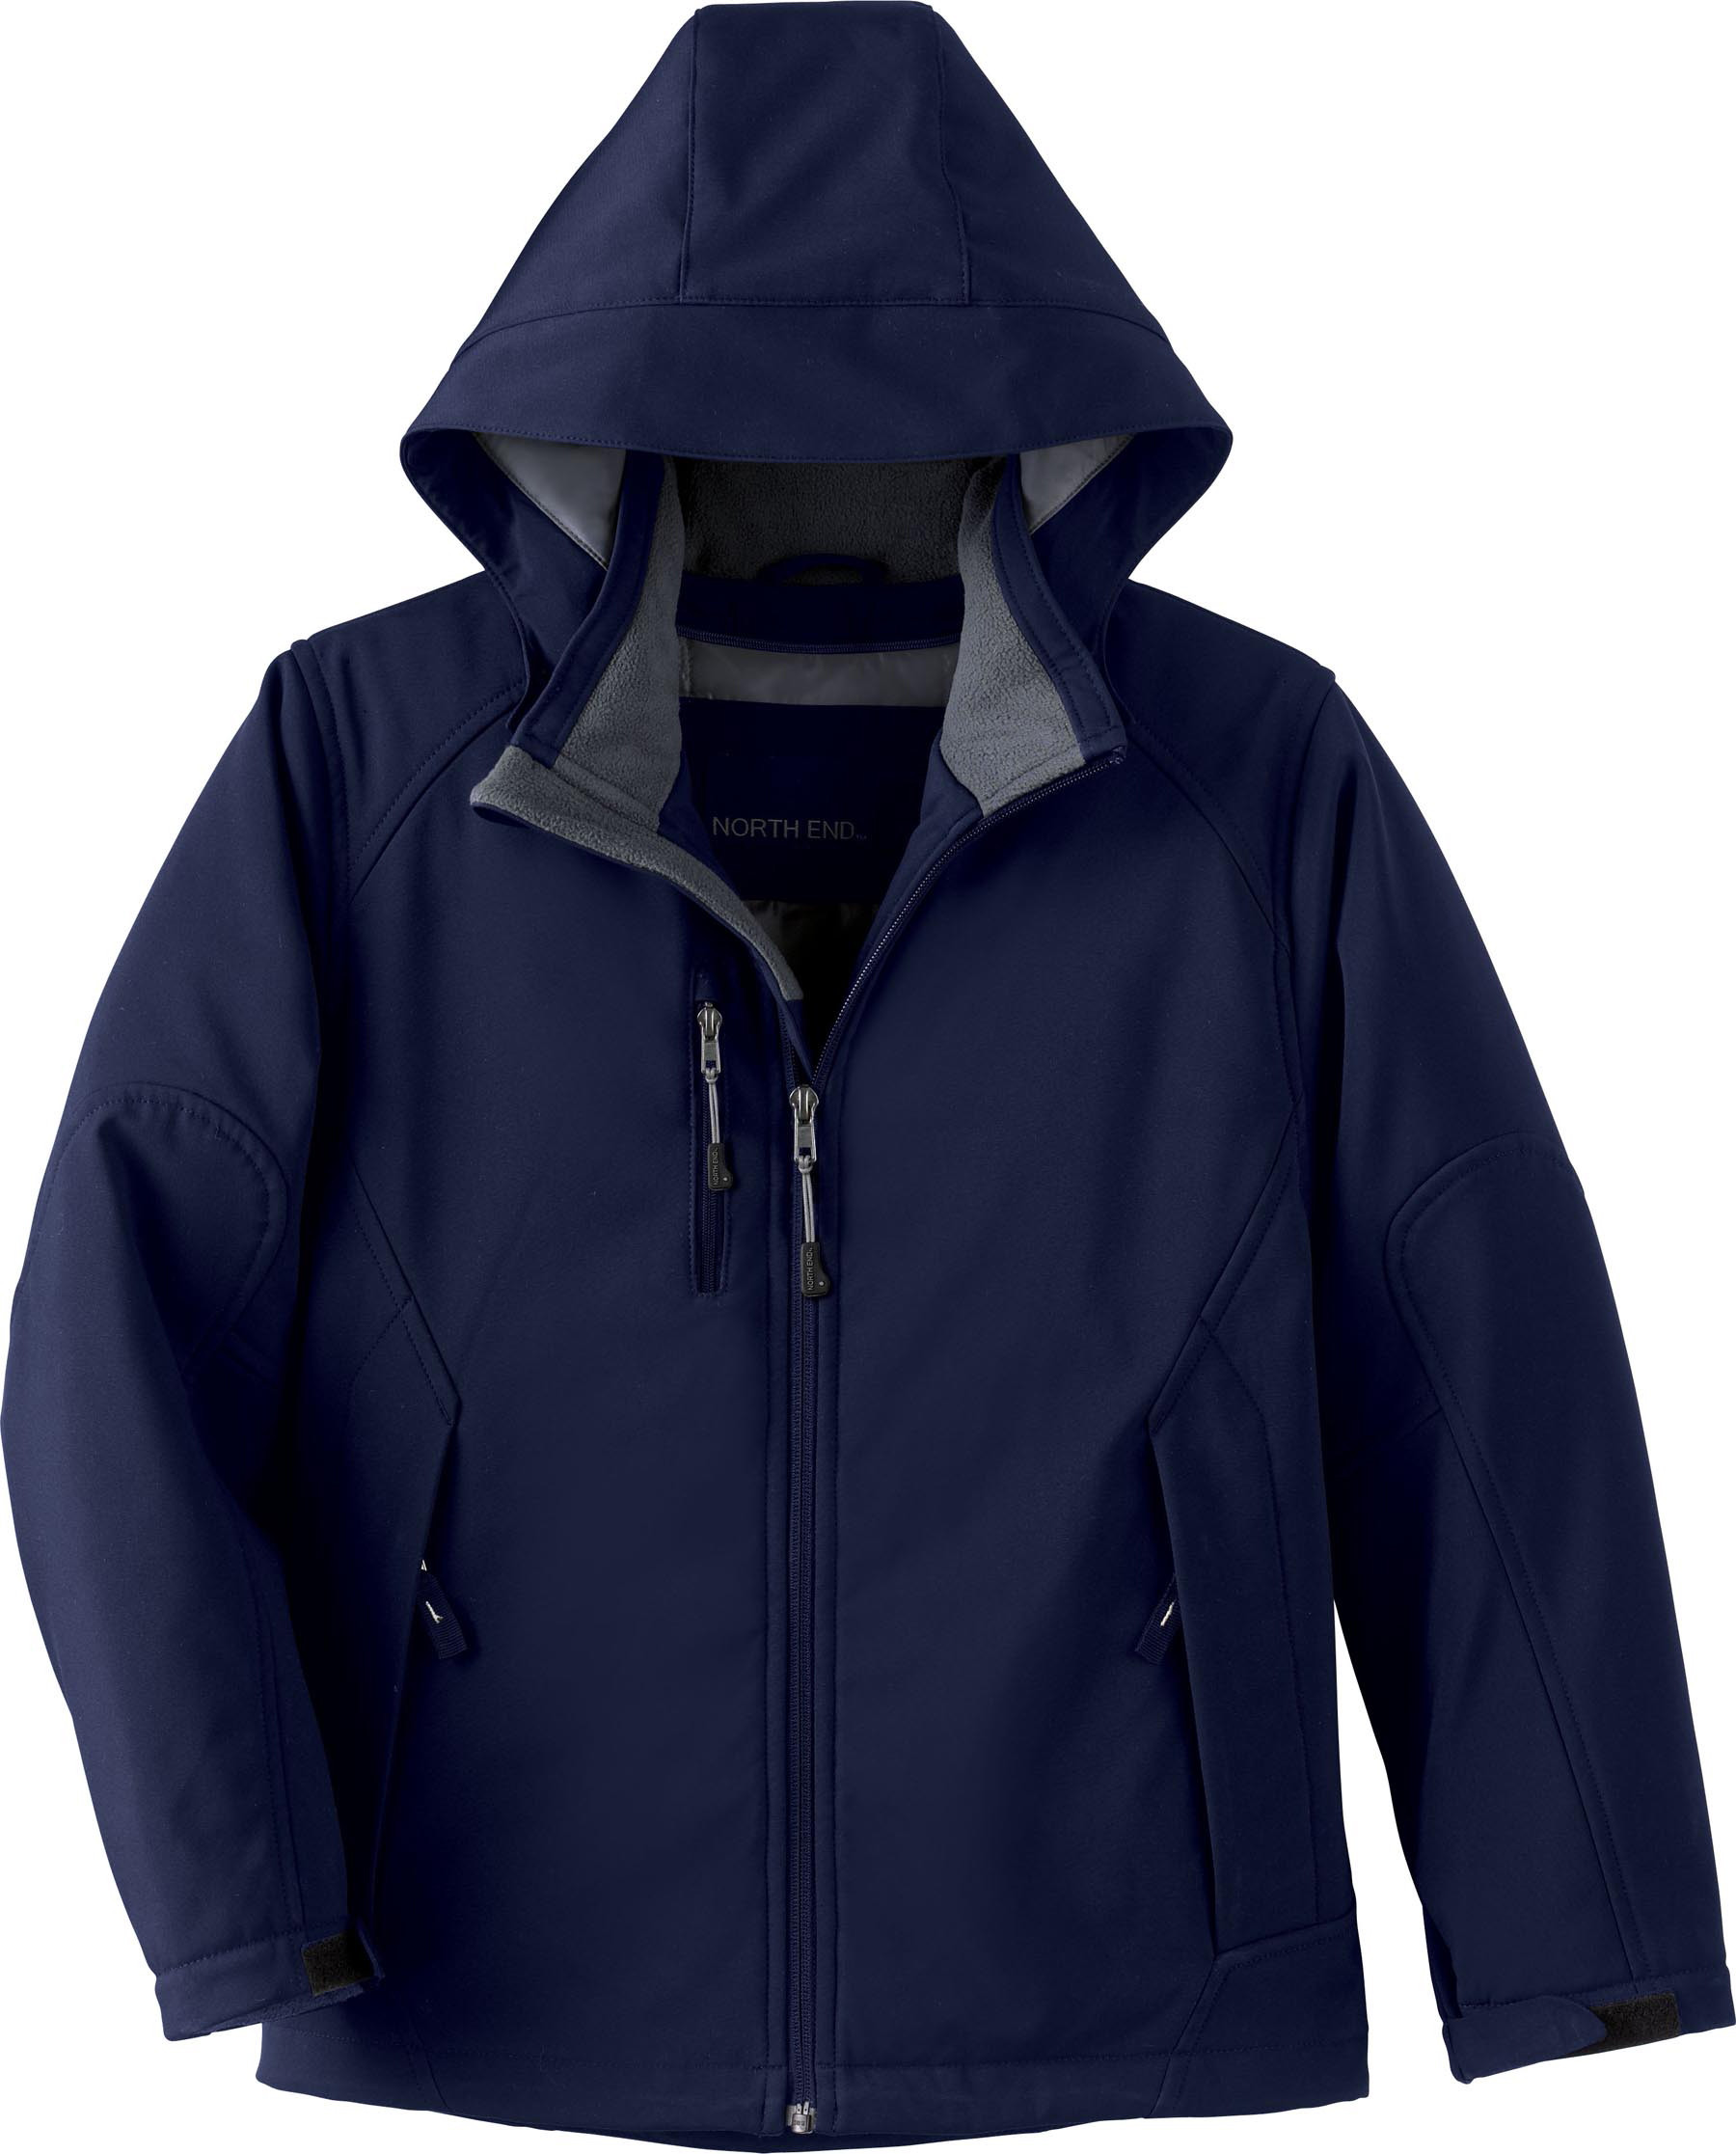 Ash City UTK 3 Warm.Logik 68010 - Glacier Youth Insulated ...